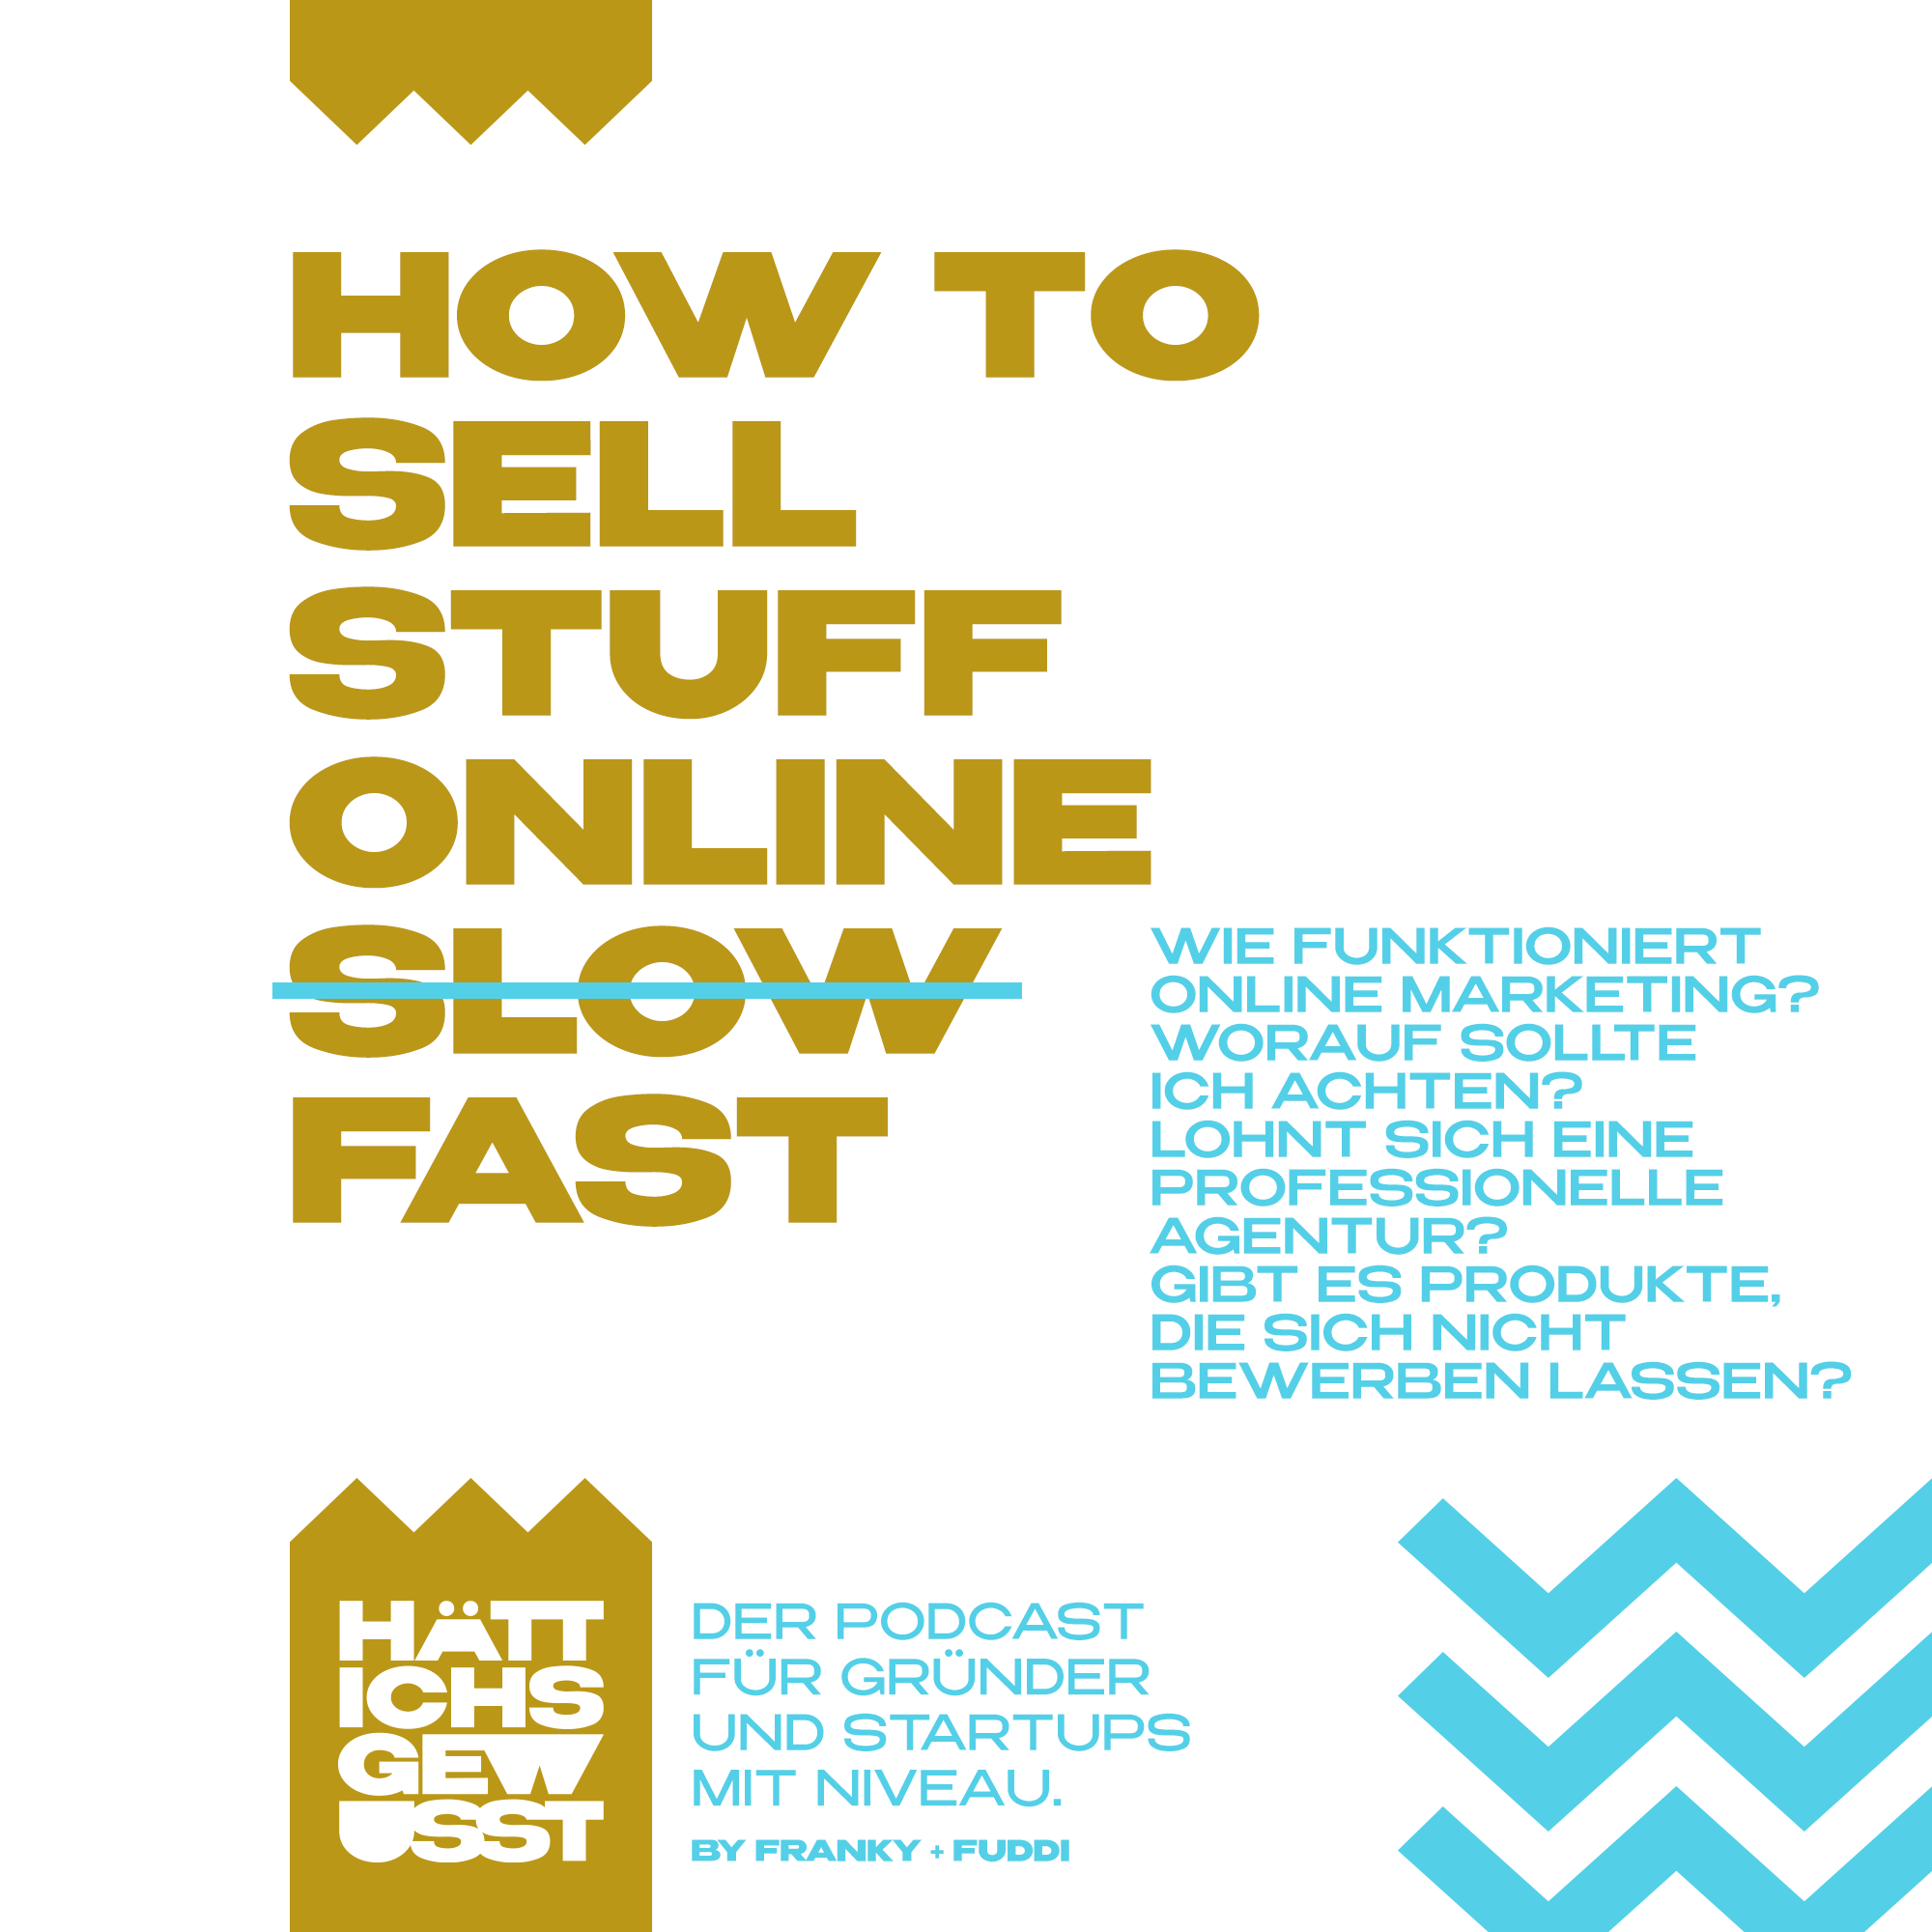 Folge 6 – How to sell stuff online fast